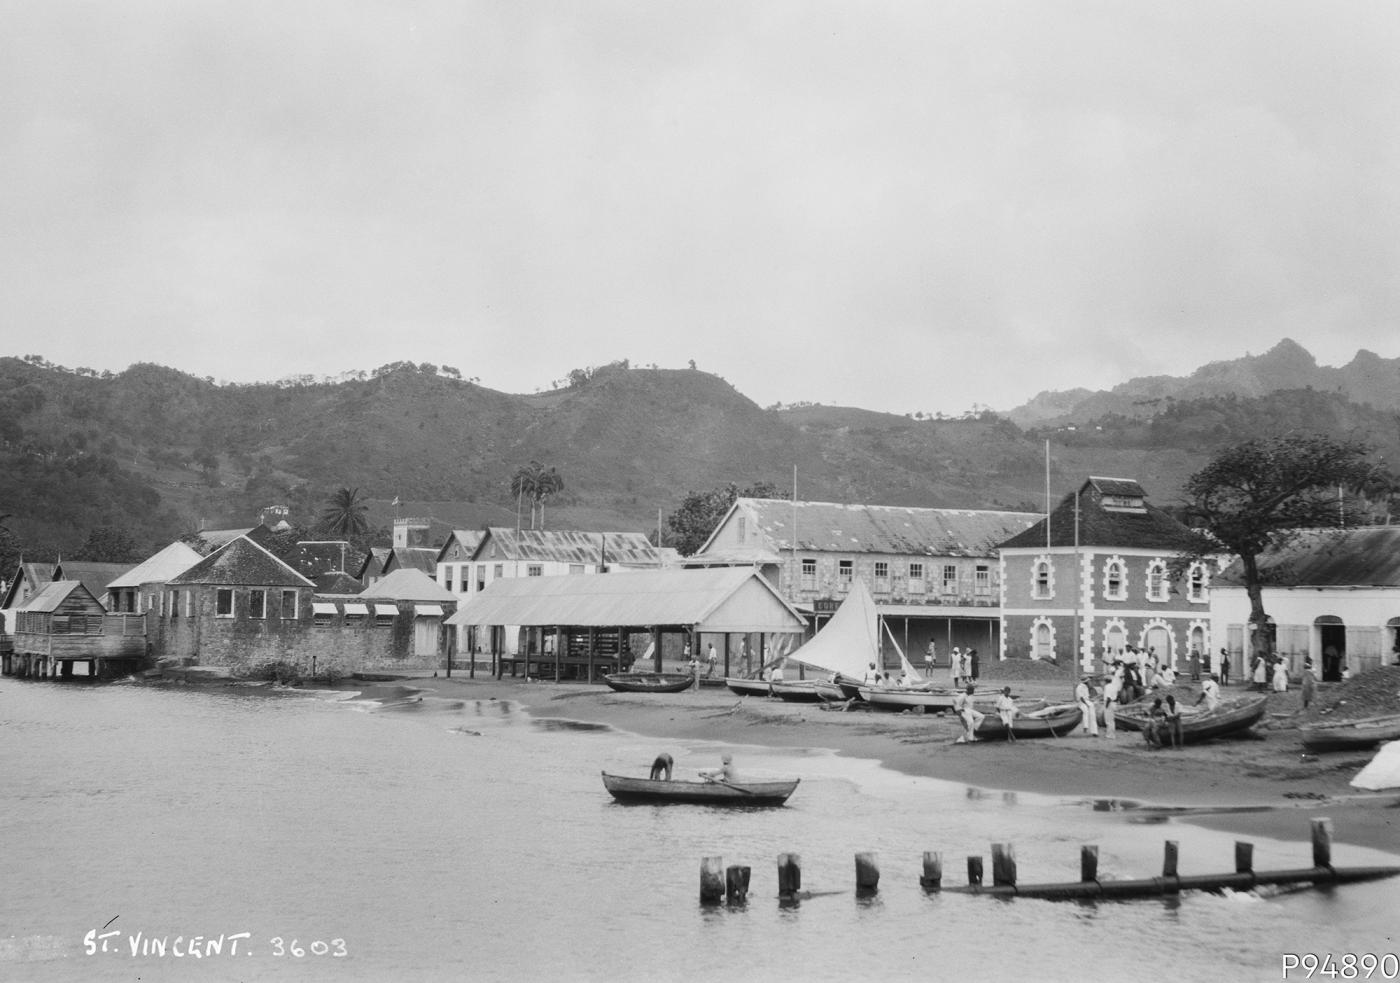 An image showing 'St. Vincent and the Grenadines, West Indies'